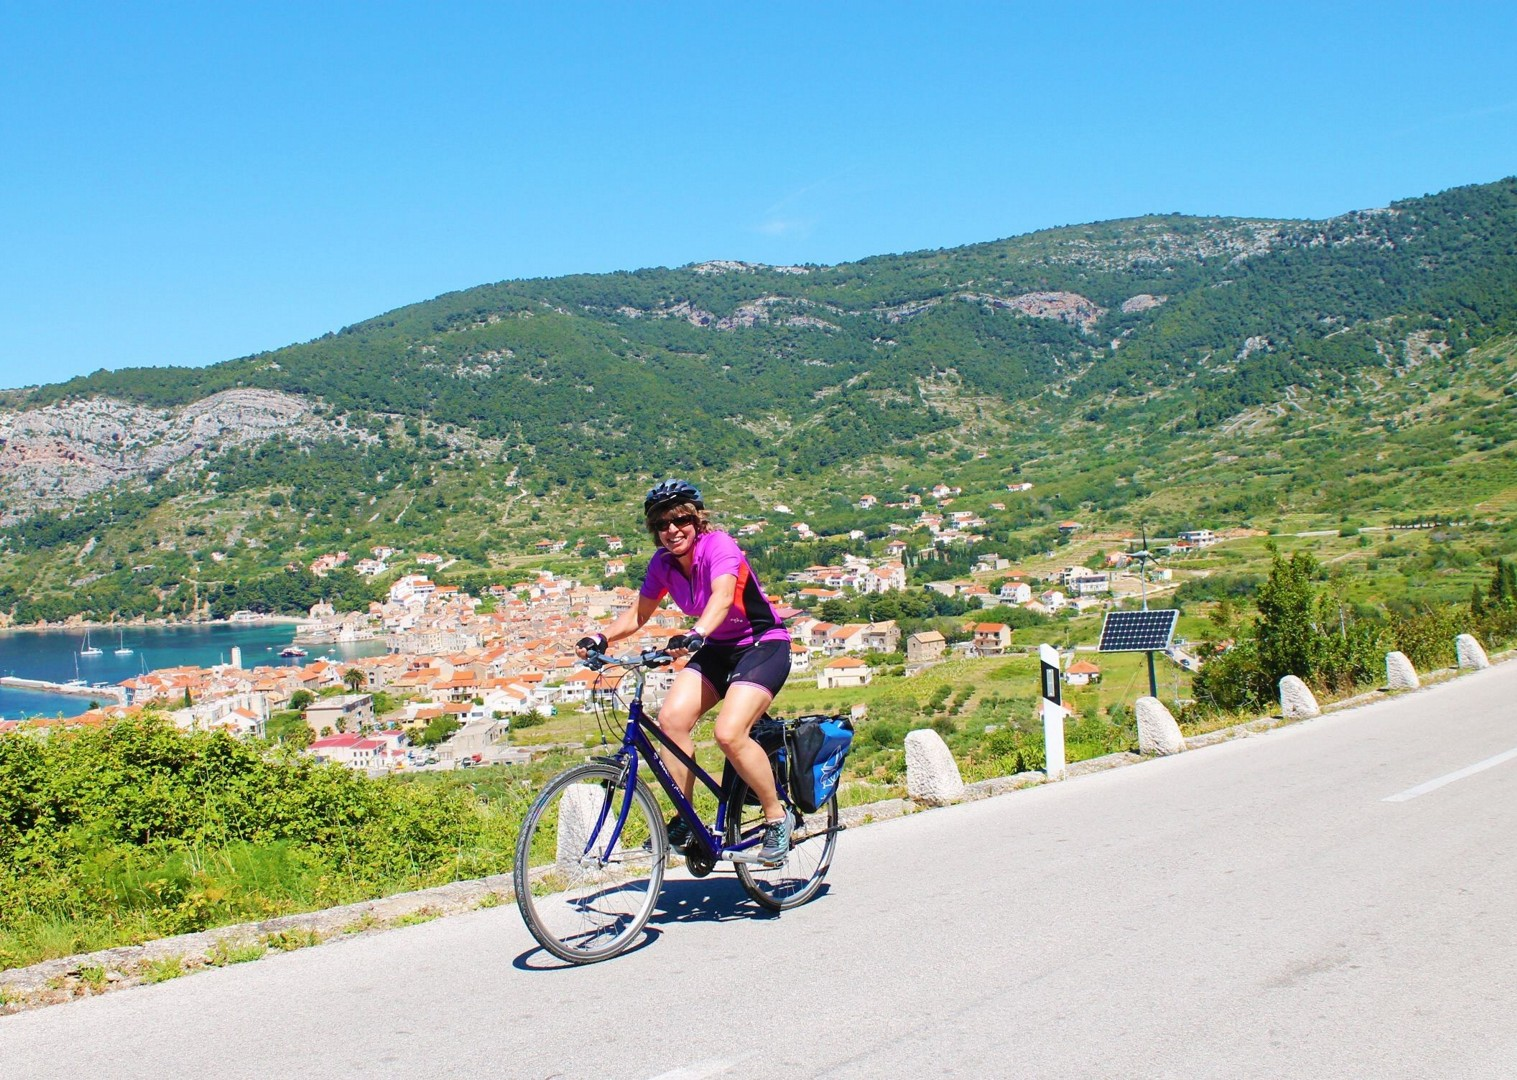 cetina-gorge-croatia-bike-scenic-tour.jpg - Croatia - Southern Dalmatia Plus - Bike and Boat Holiday - Leisure Cycling